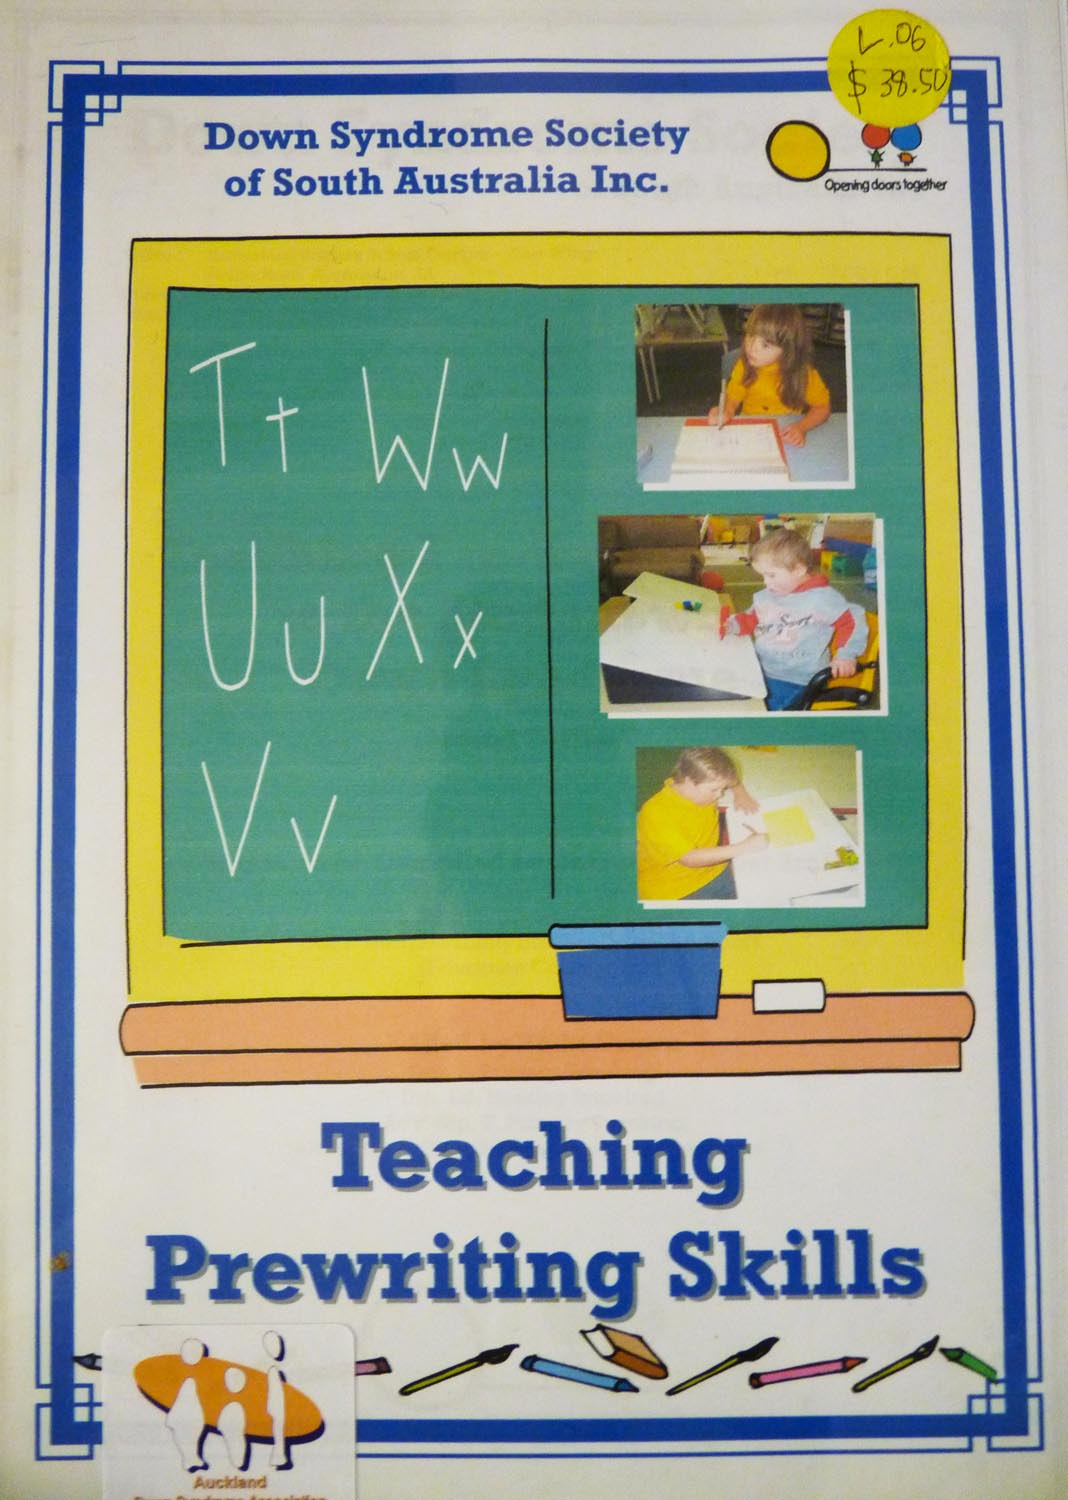 Teaching Prewriting Skills Image